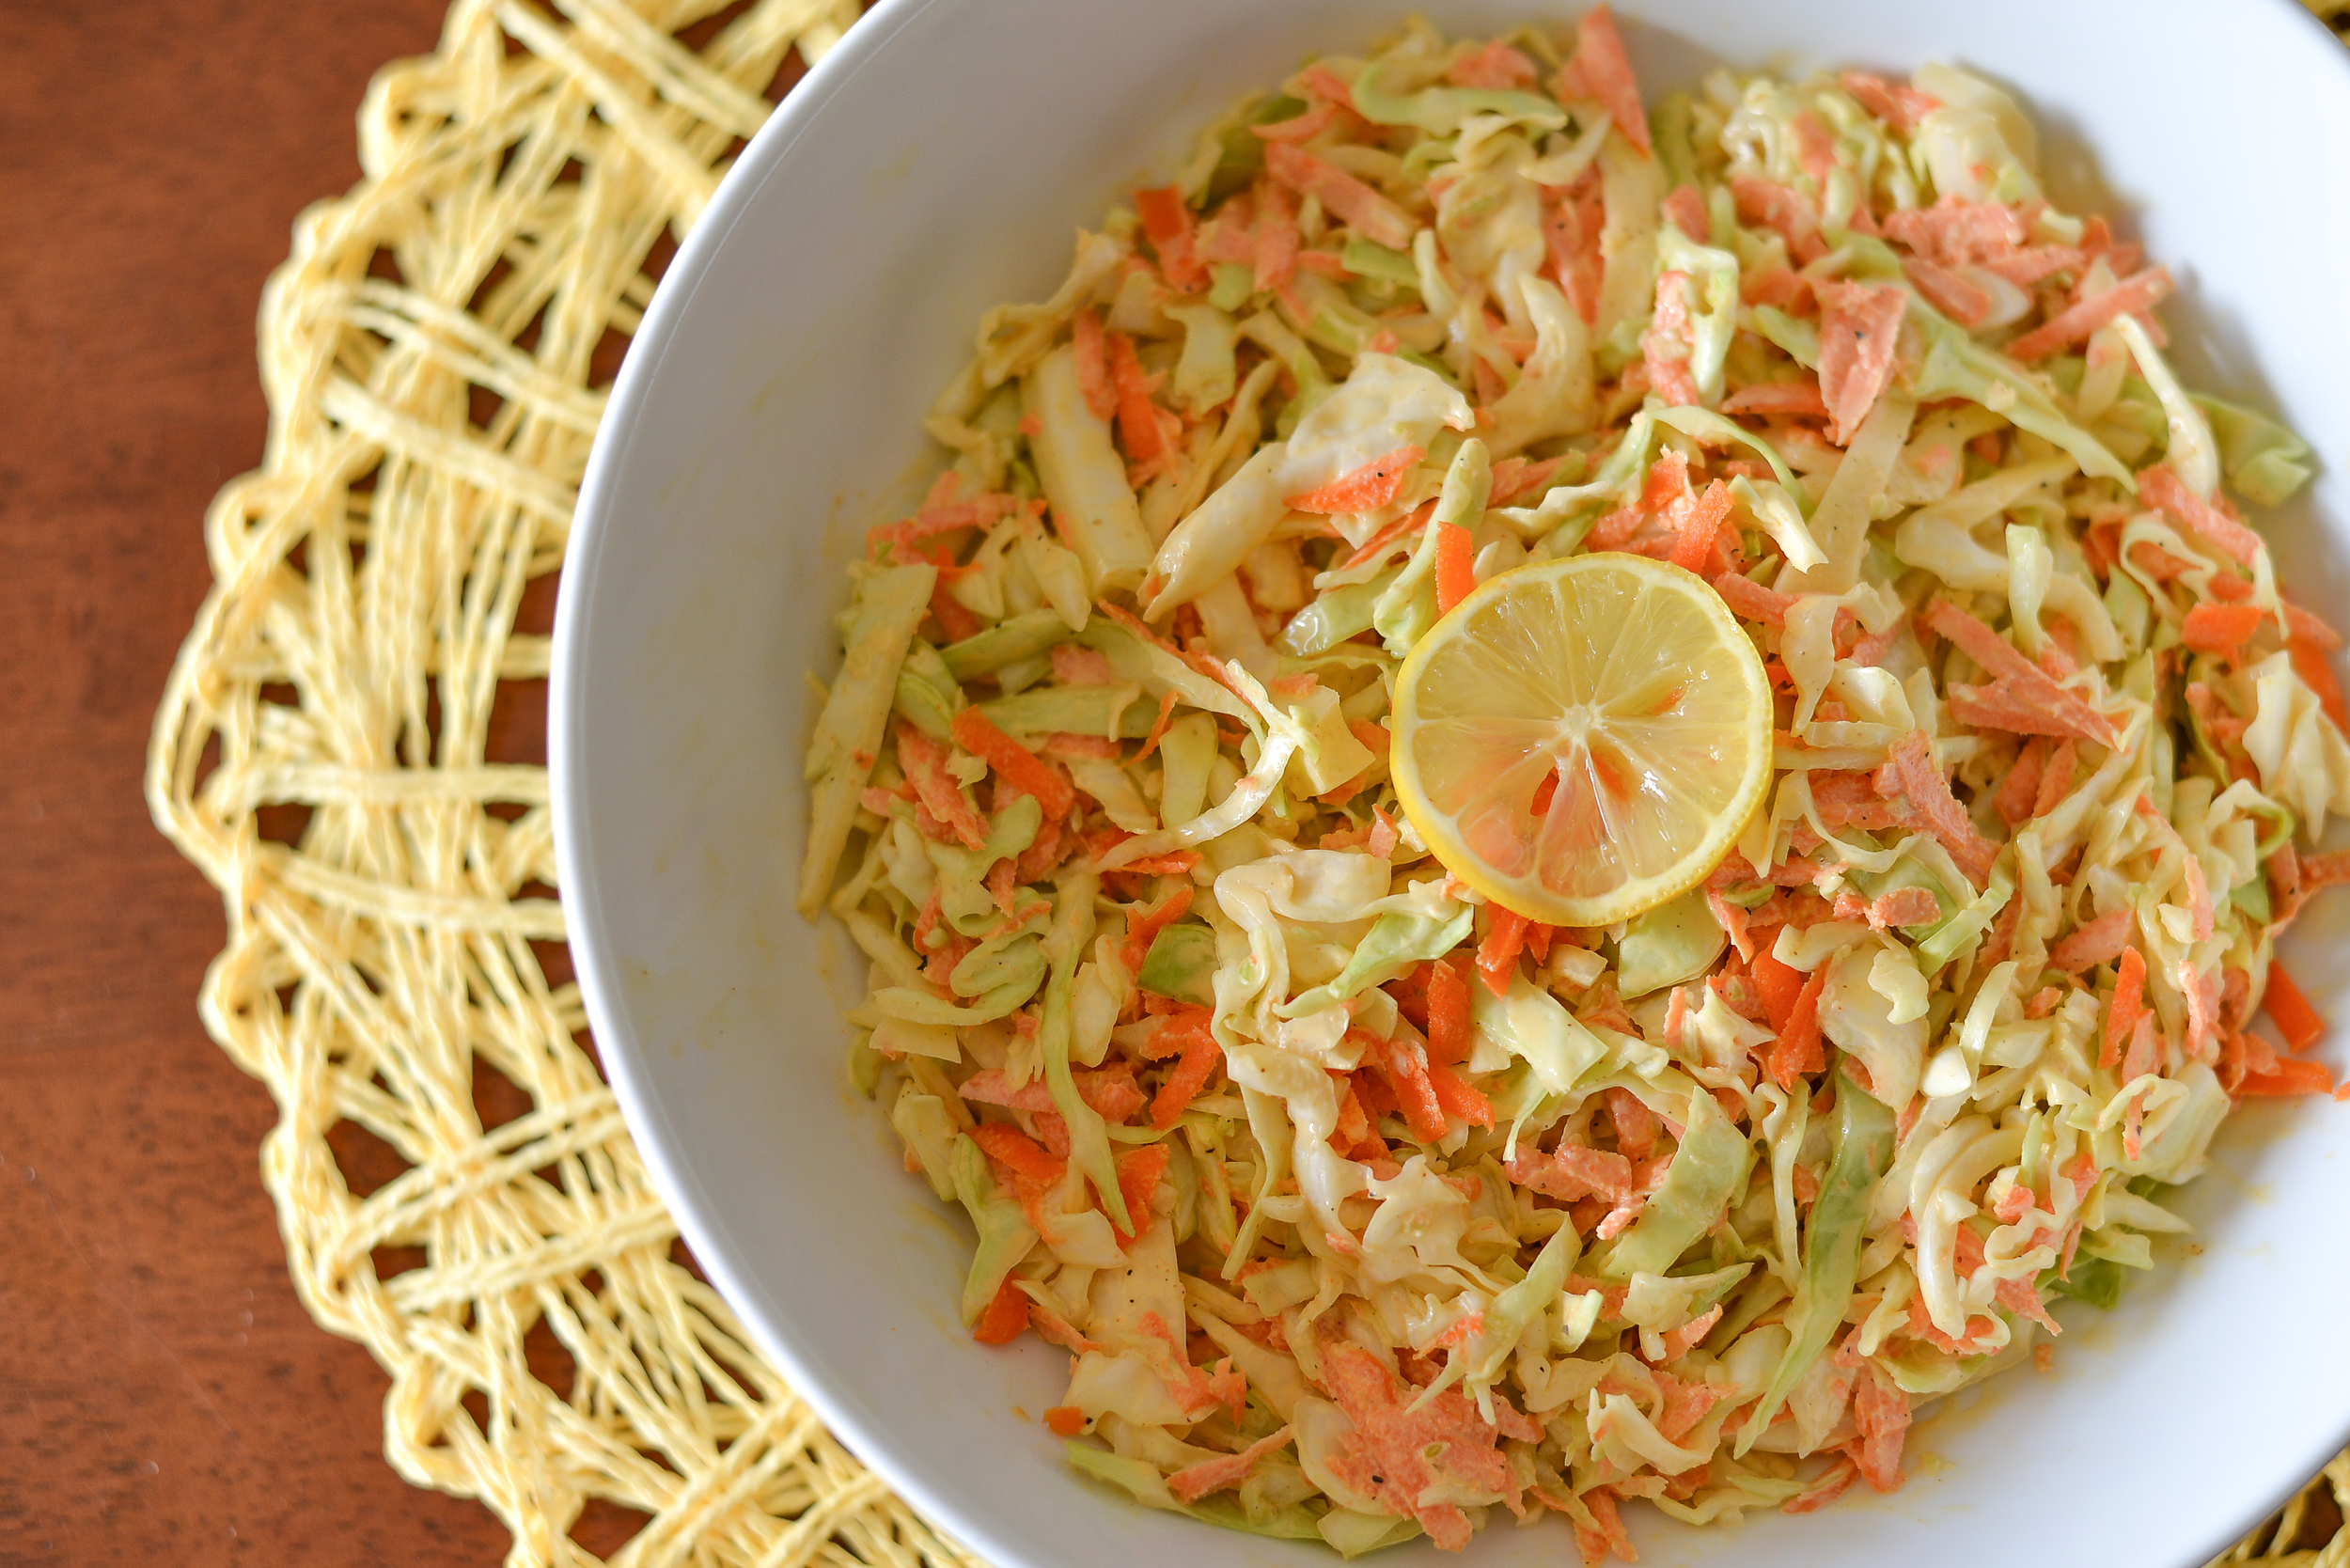 Tangy Coleslaw with May-Yo Dressing